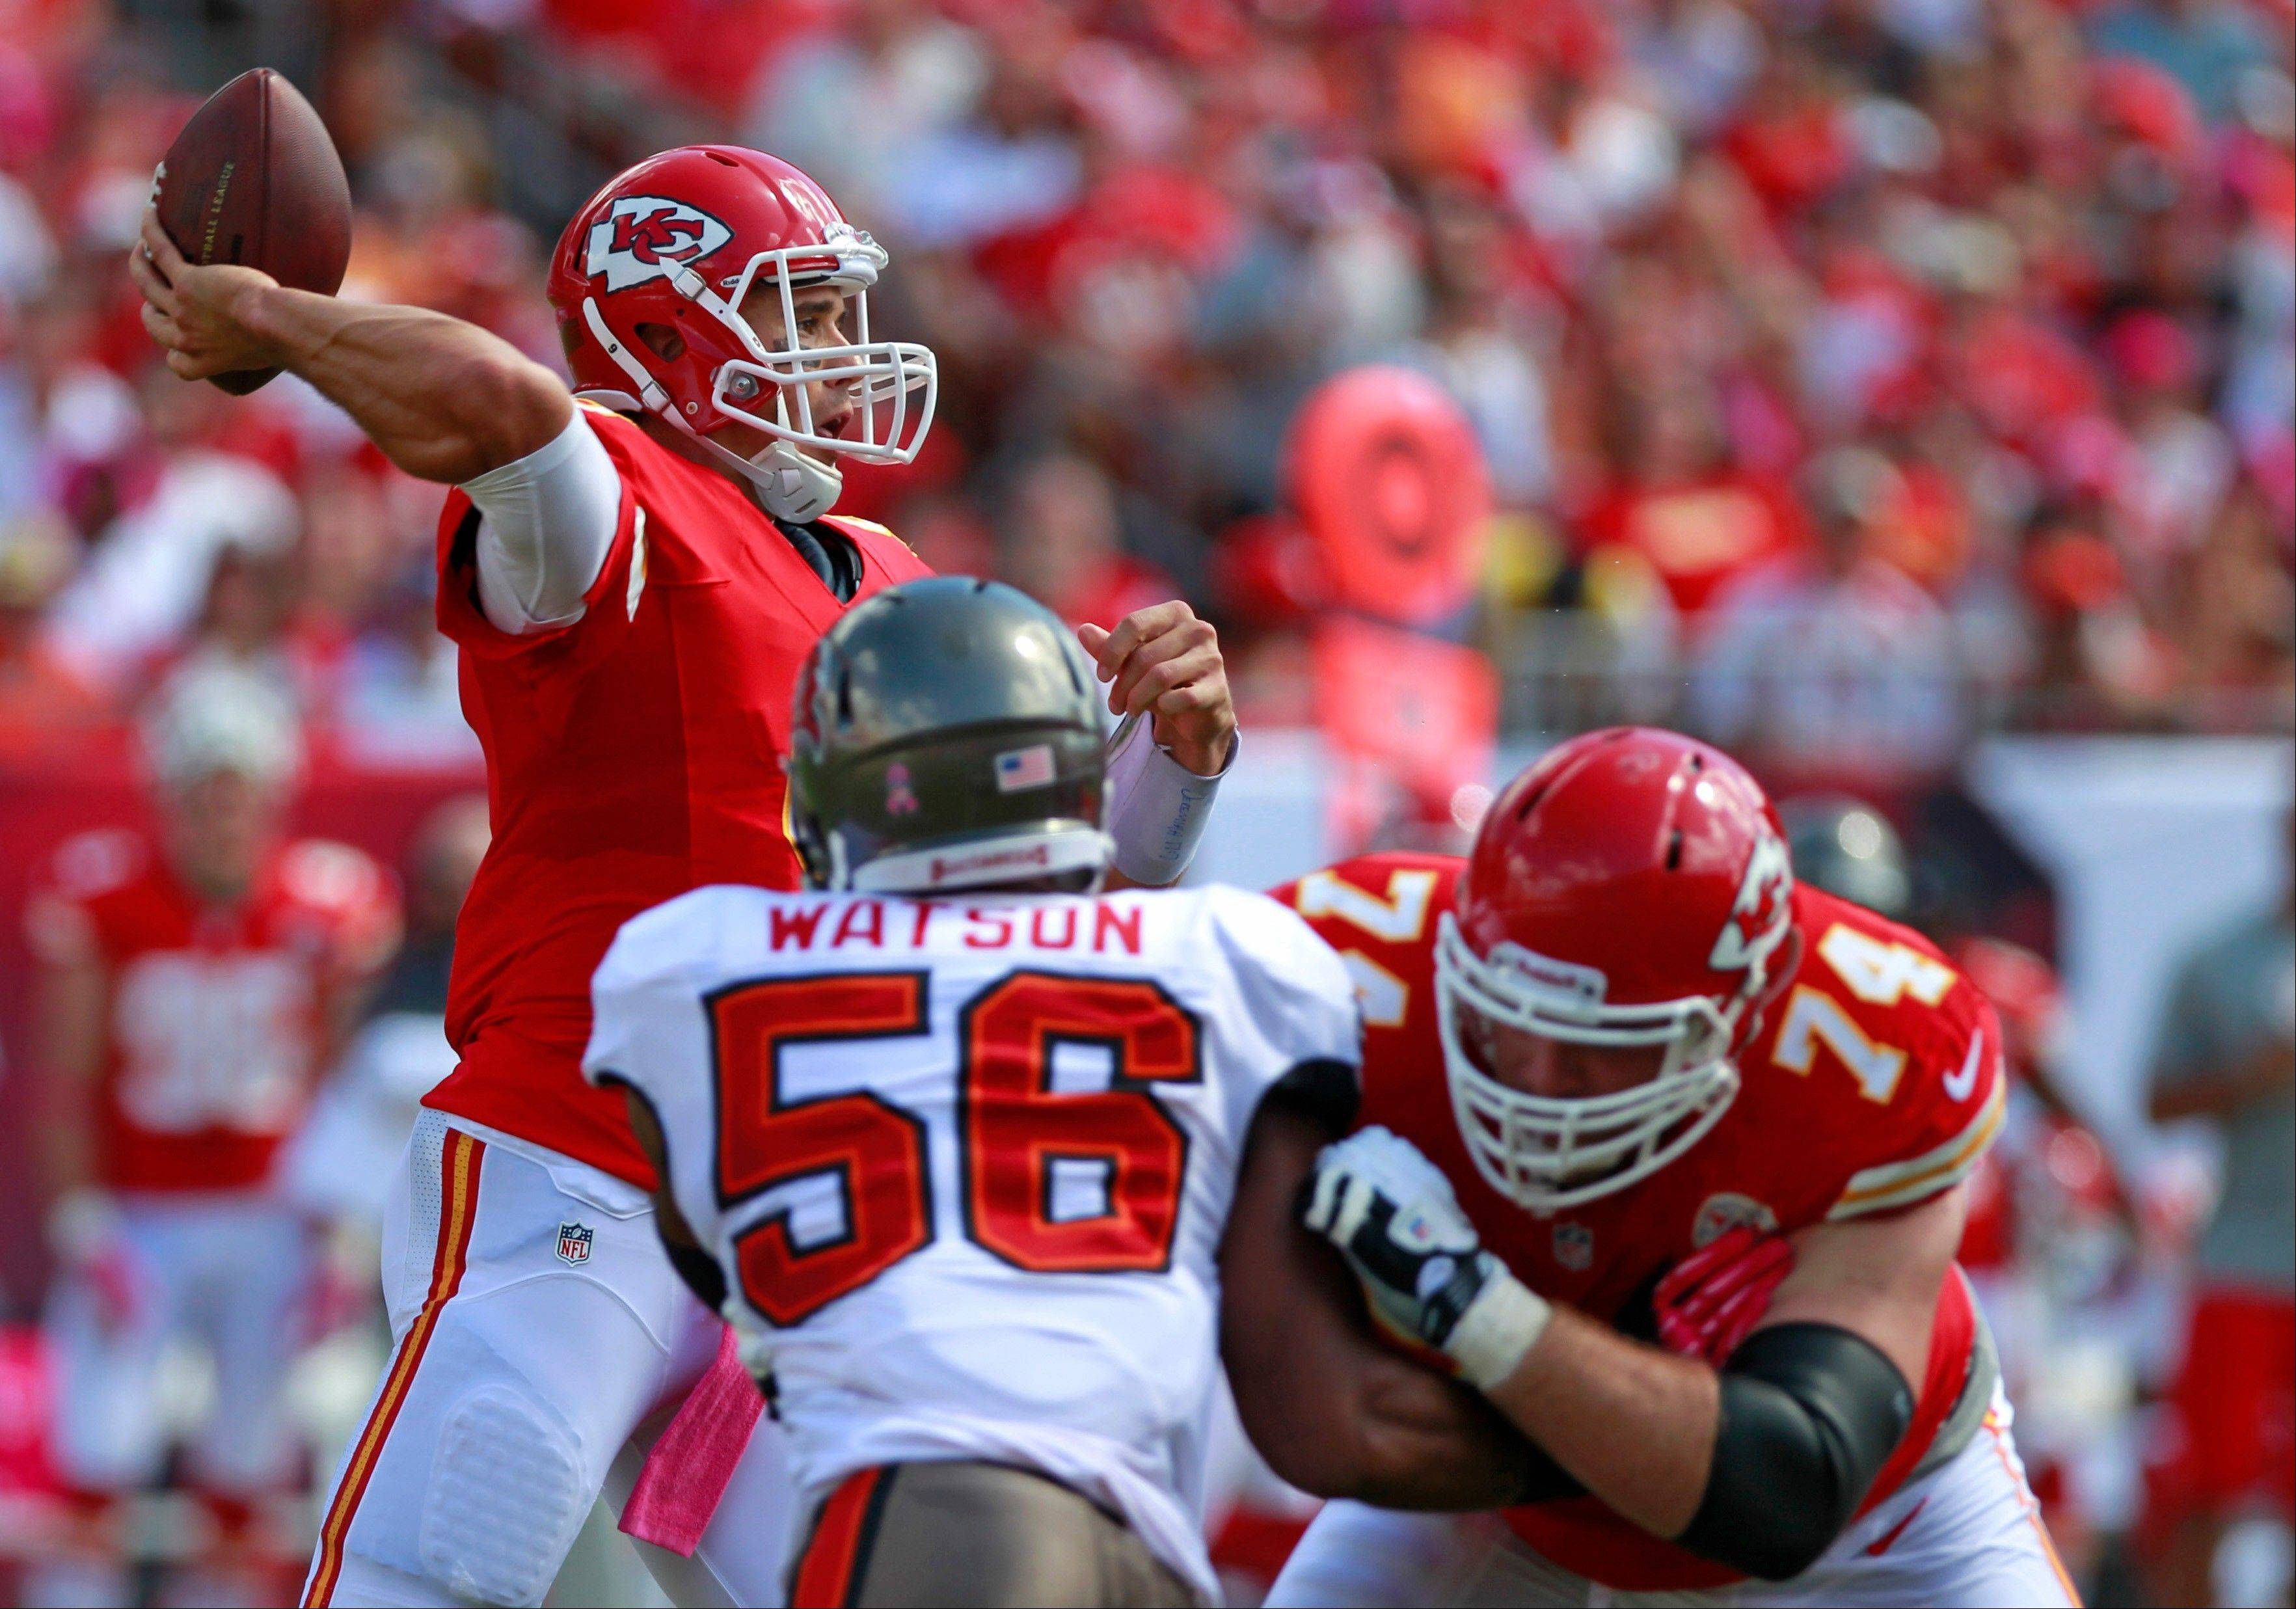 Kansas City Chiefs quarterback Brady Quinn, left, throws a pass as tackle Eric Winston (74) blocks Tampa Bay Buccaneers linebacker Dekoda Watson (56) during the first half of an NFL football game, Sunday in Tampa, Fla.